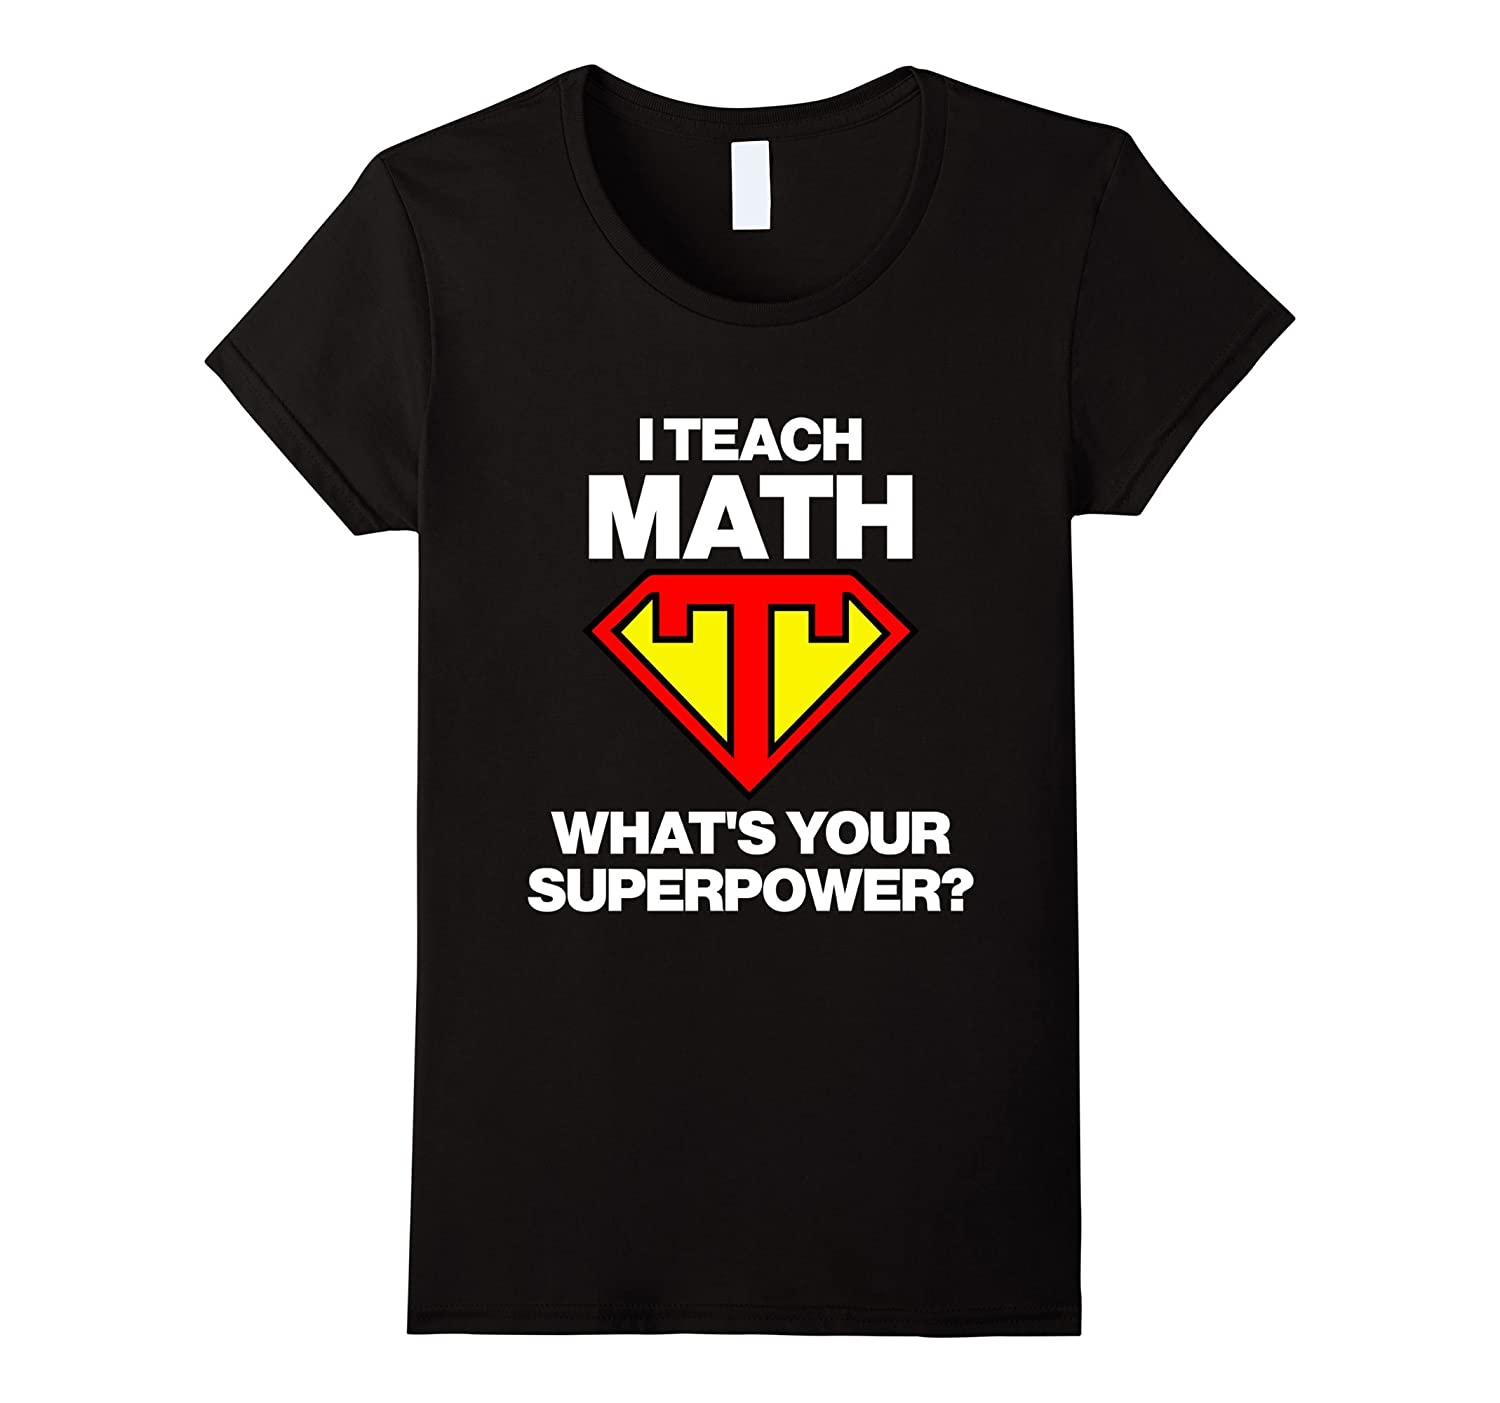 I Teach Math What's Your Superpower T-shirt 5 colors